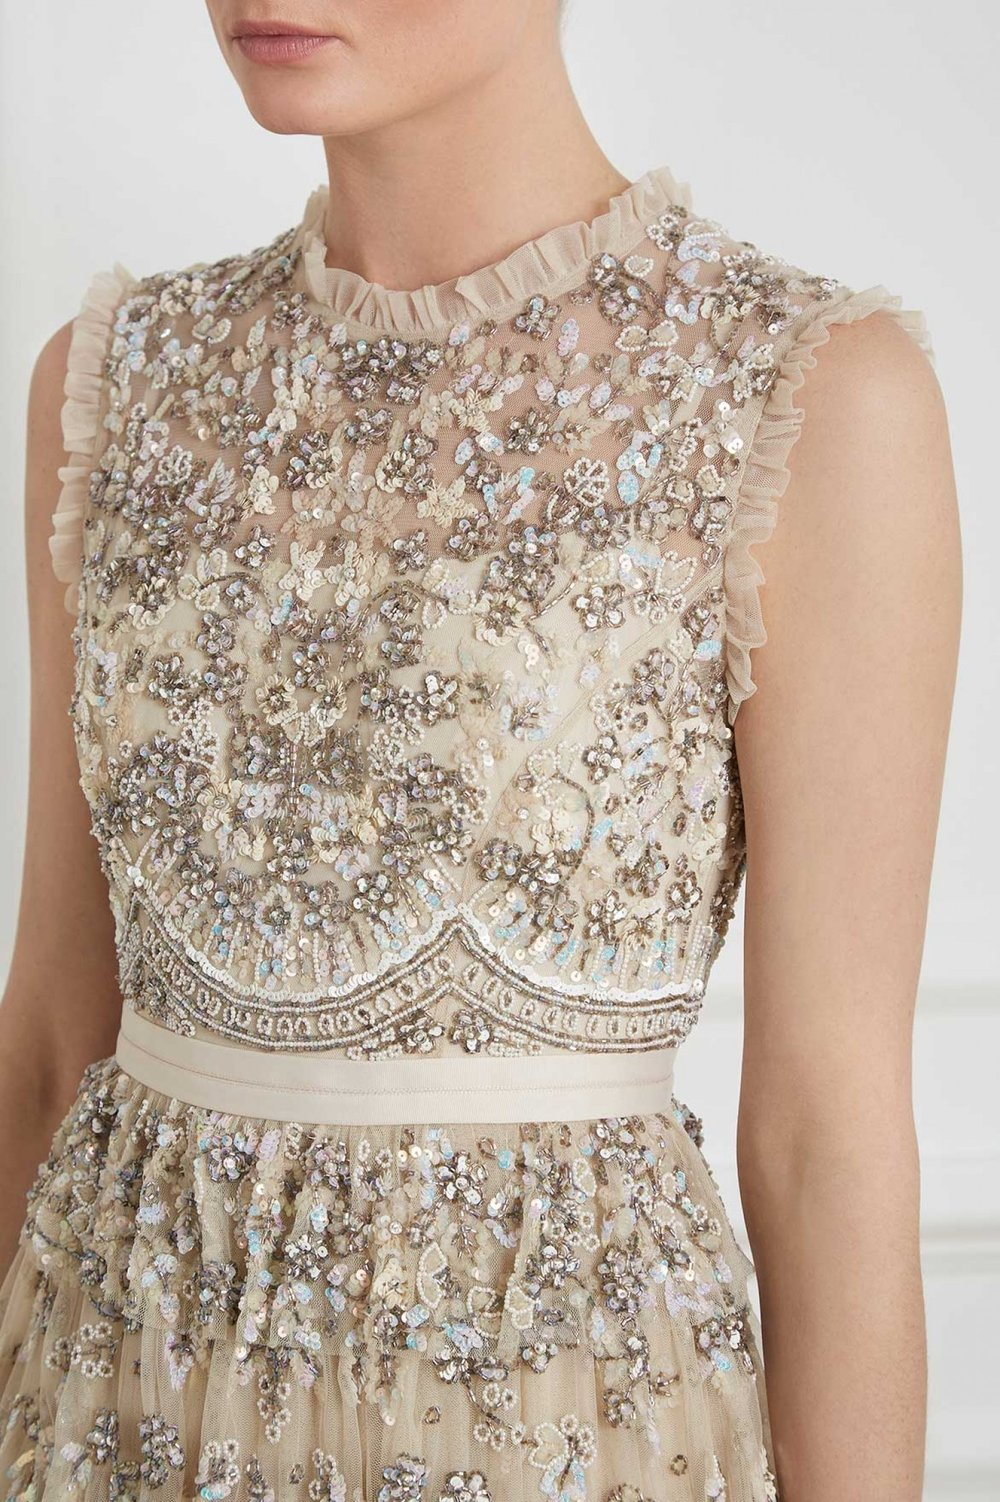 pearlescent_gown_-_champagne_-_needle_thread_-_3_1.jpg